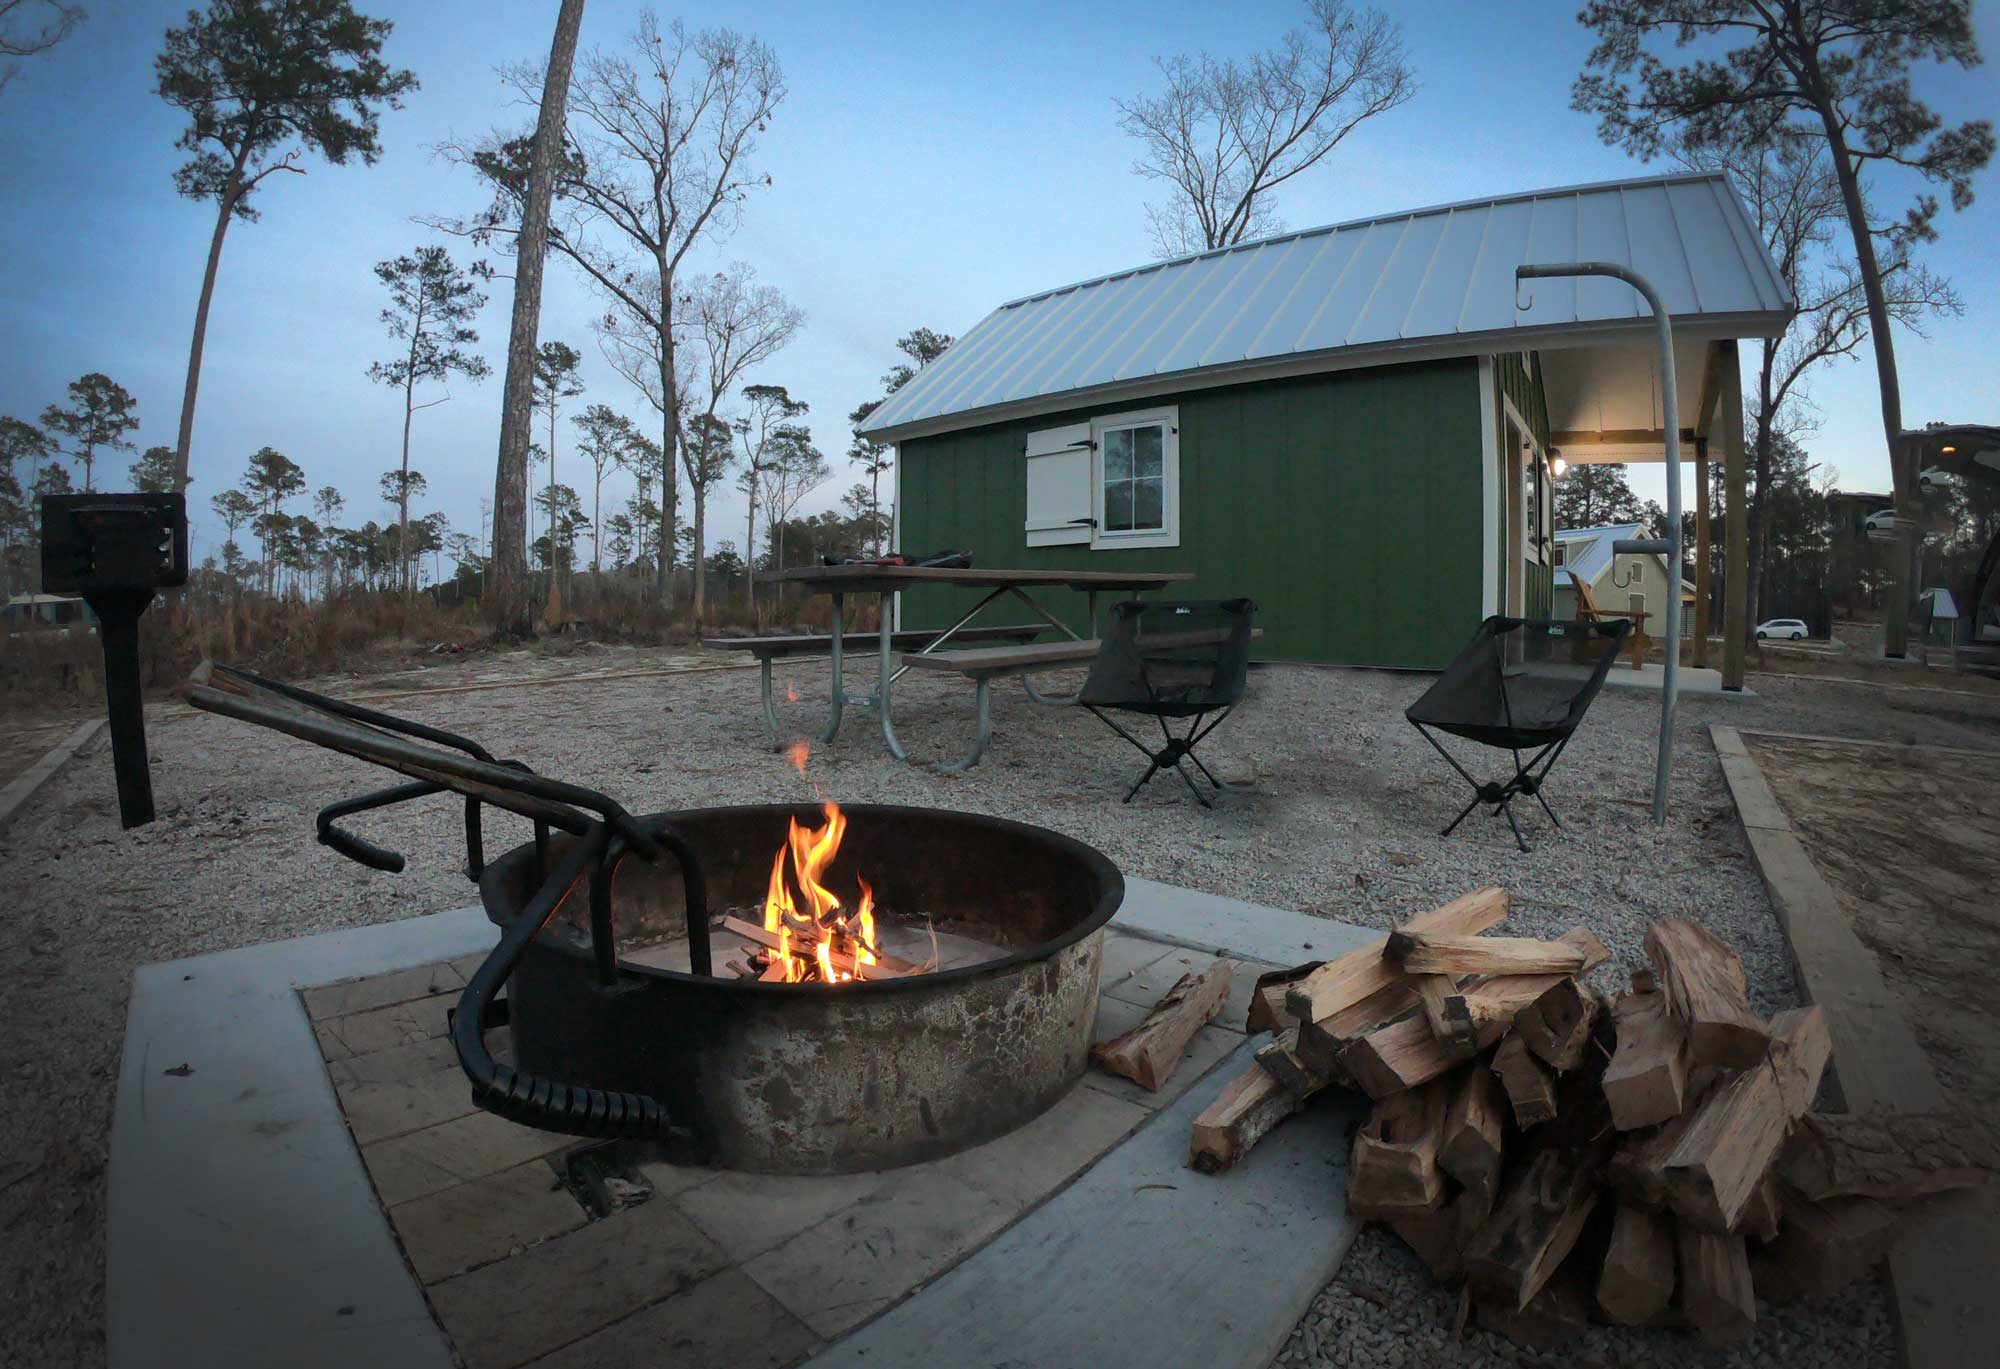 Evening at Goose Creek State Park camping cabin with fire pit, picnic table, lantern hook, and grill in North Carolina